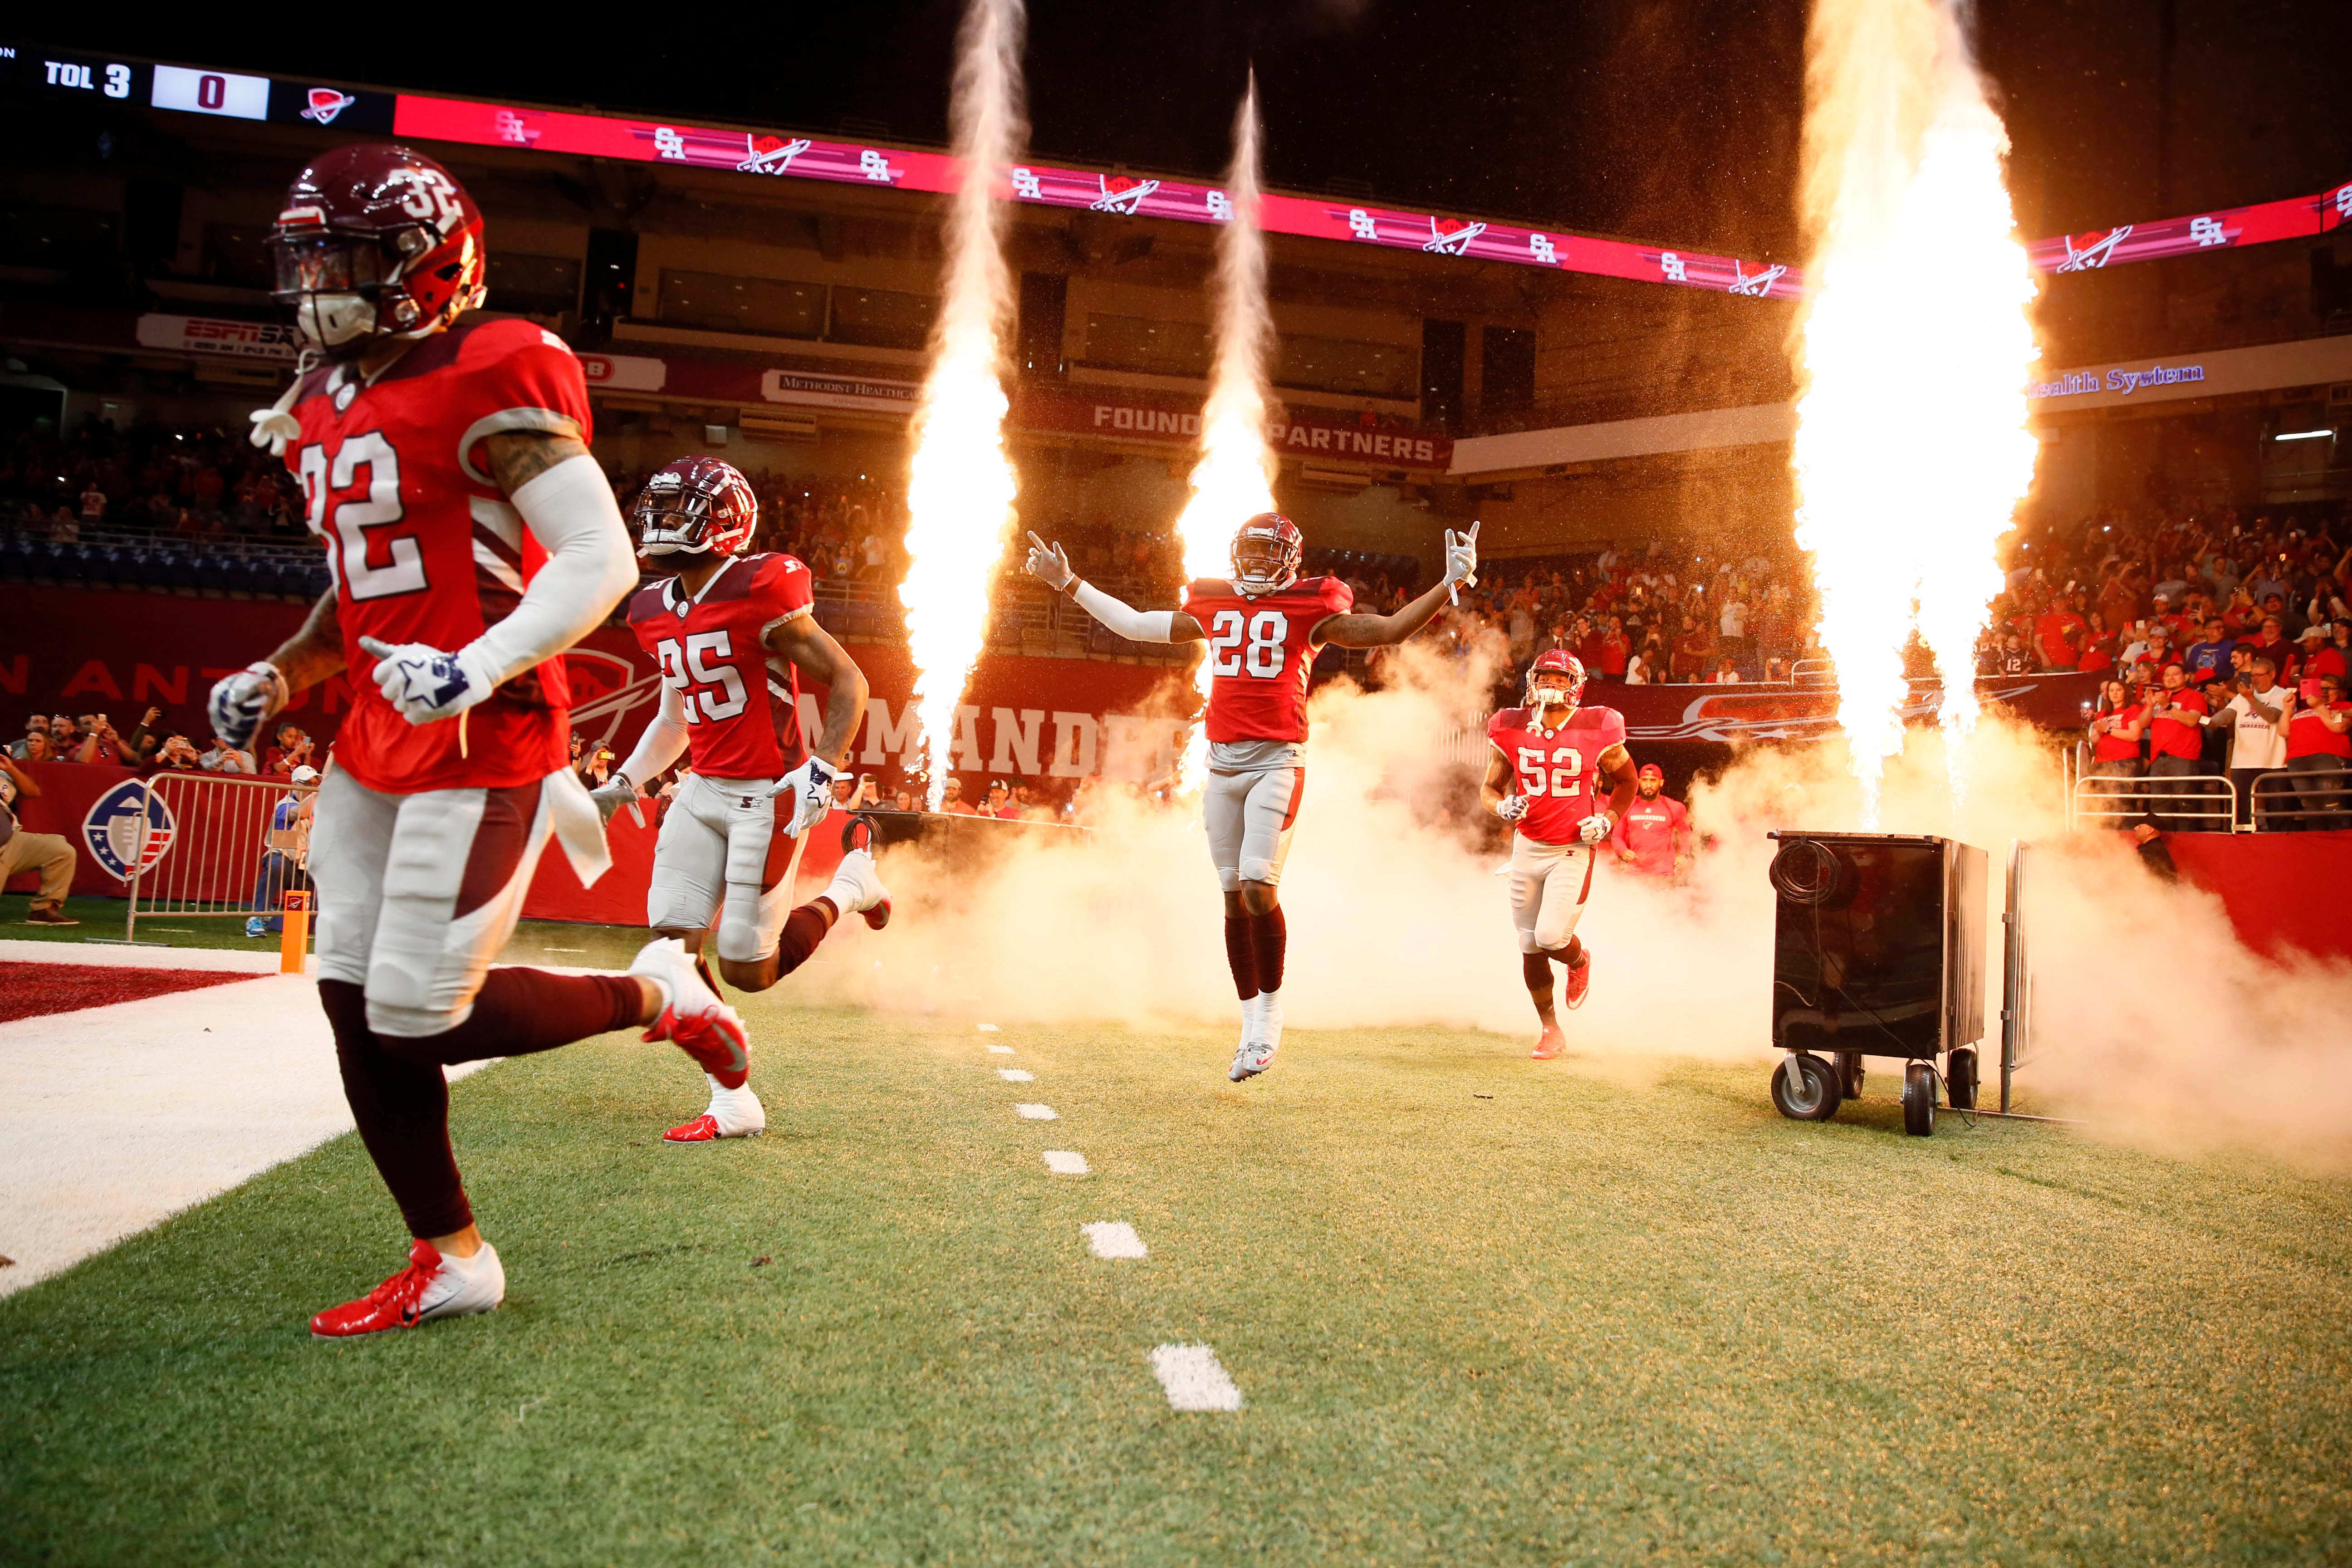 Opinion: No surprise that AAF already finds itself in trouble